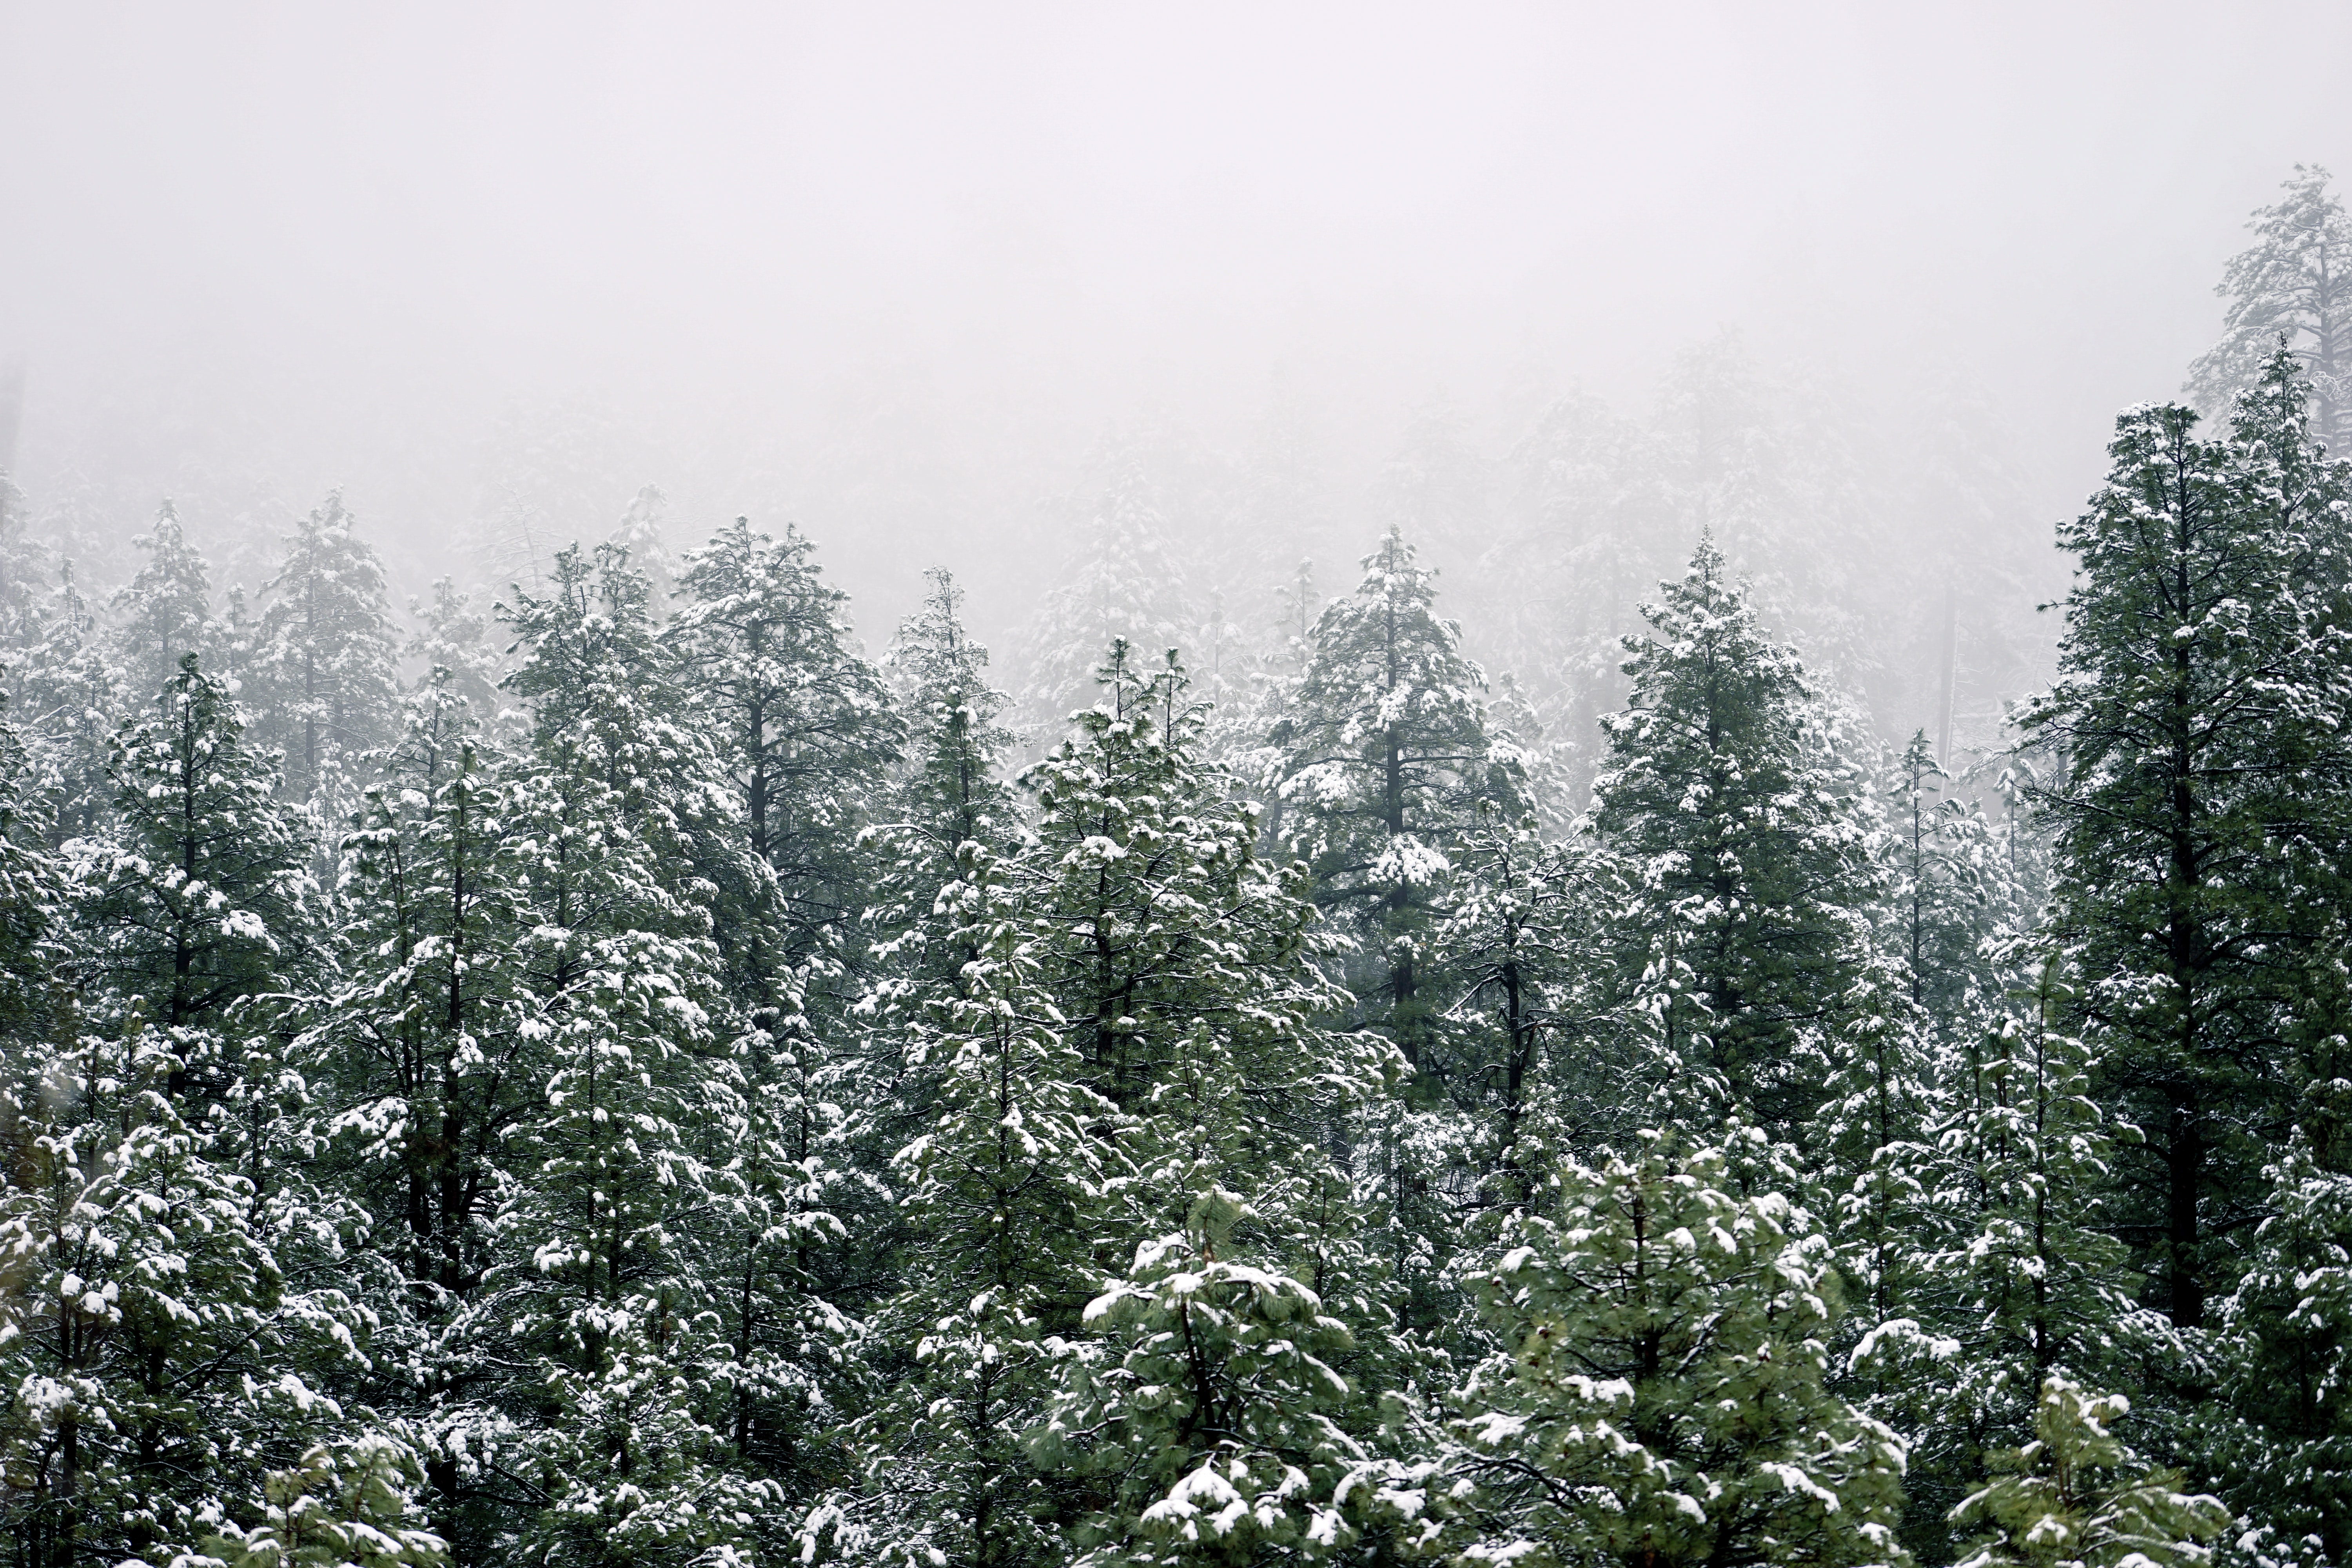 Mist rolling down on a snow covered pine forest